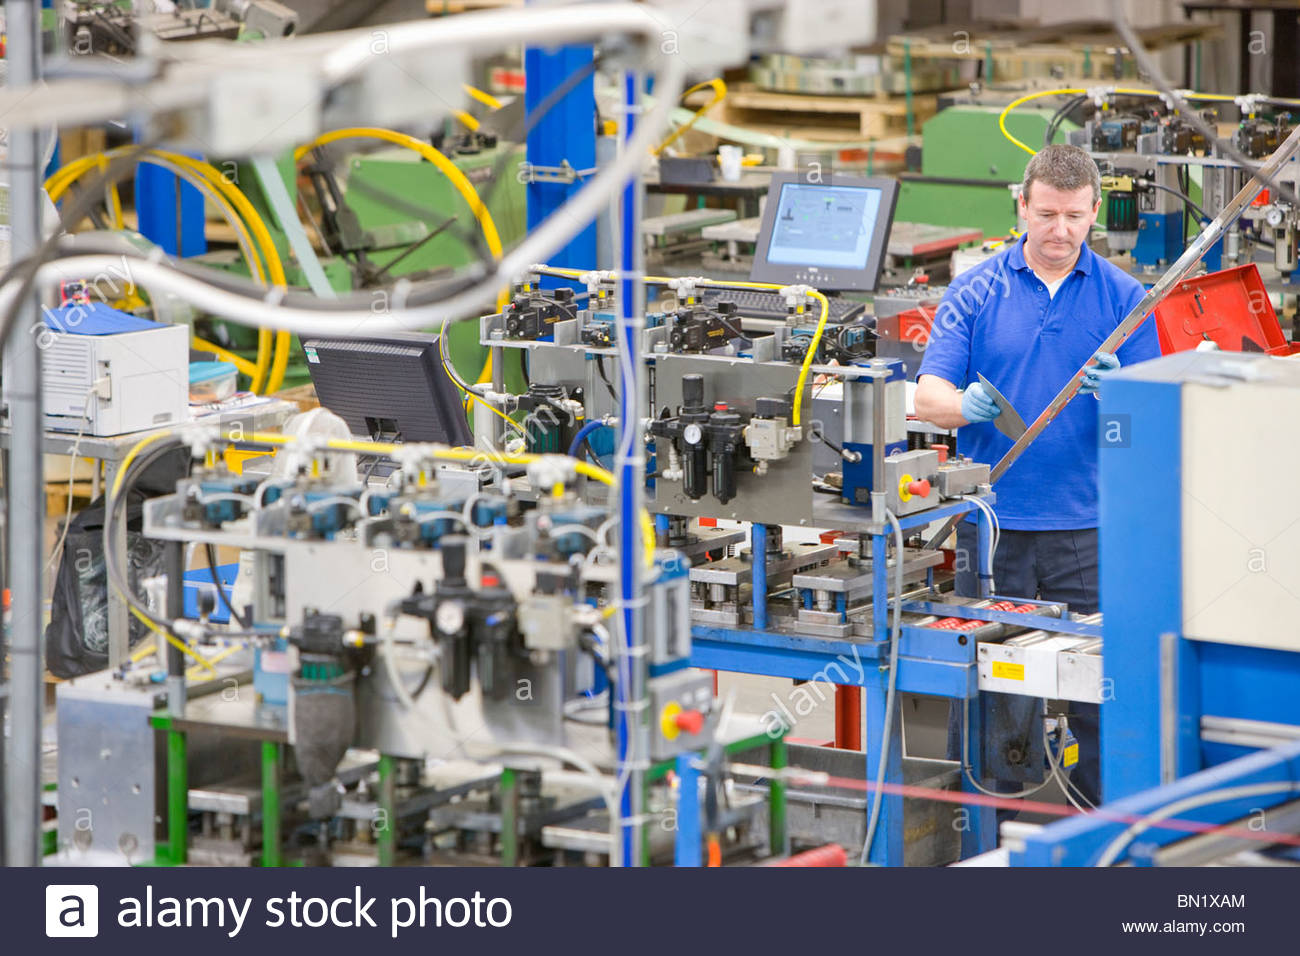 Worker inspecting aluminium light fitting near machinery in factory - Stock Image